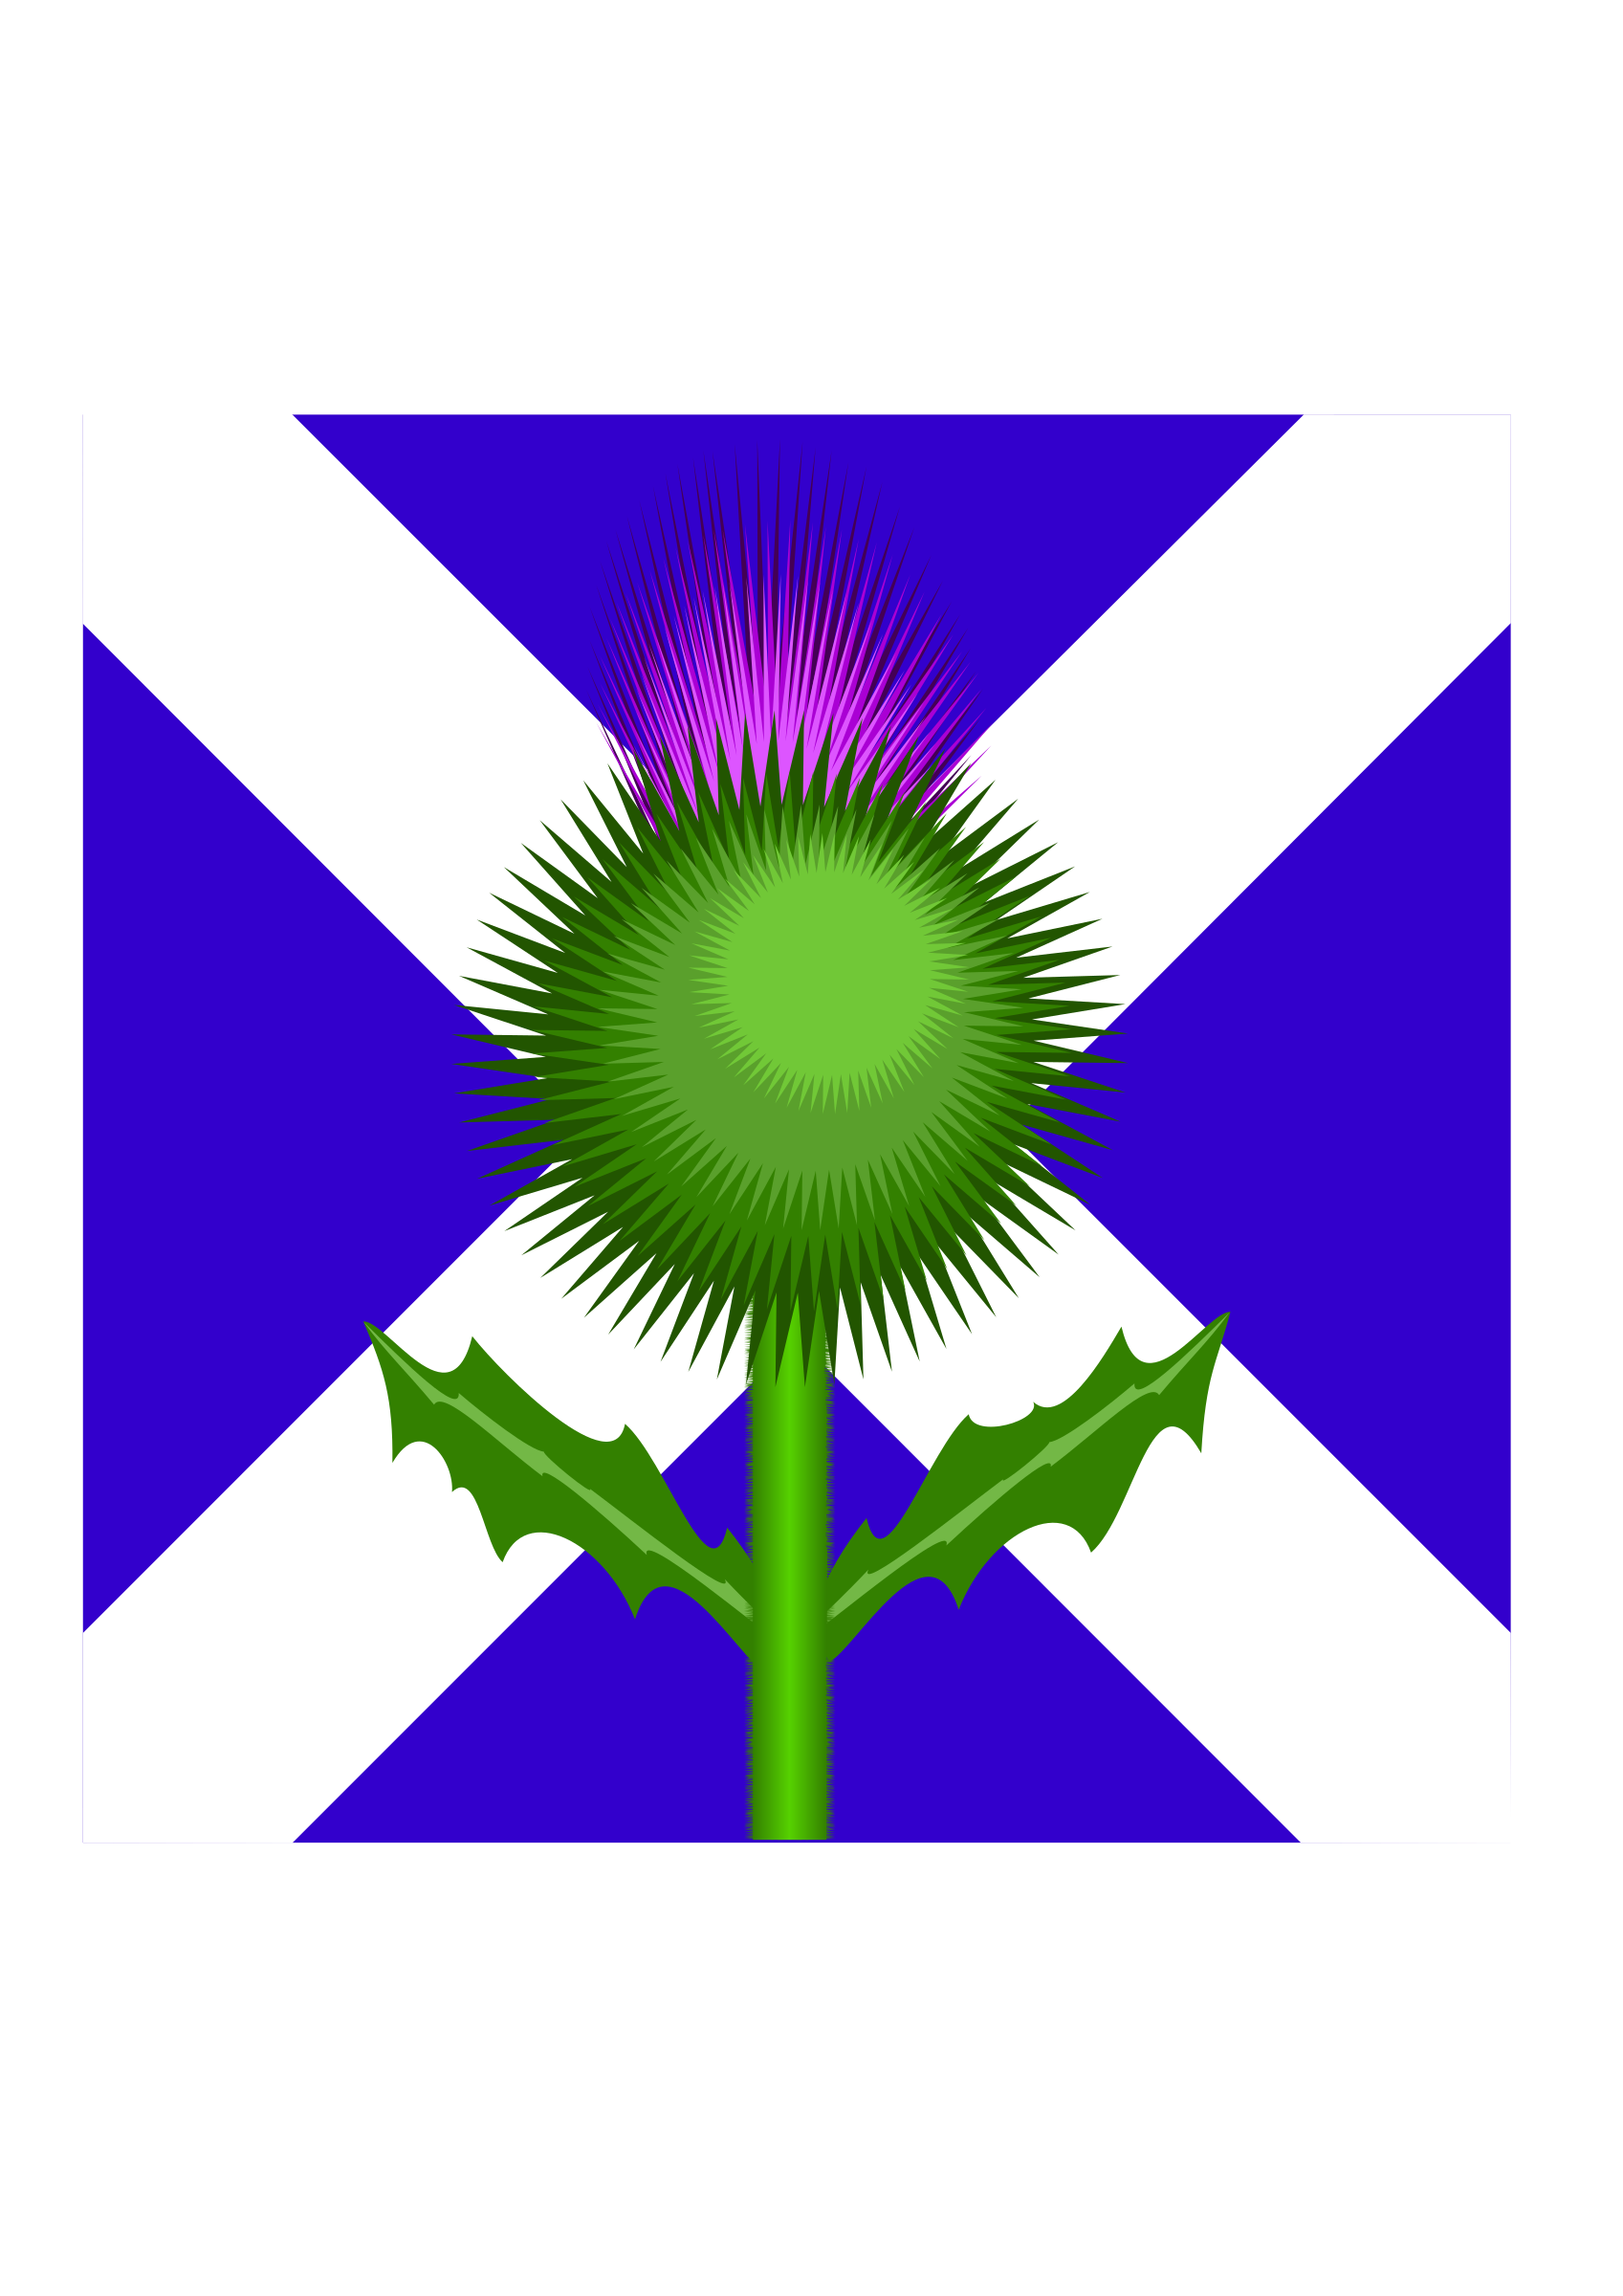 Scottish Thistle and flag by @kevie, The two national emblems: the ... picture free